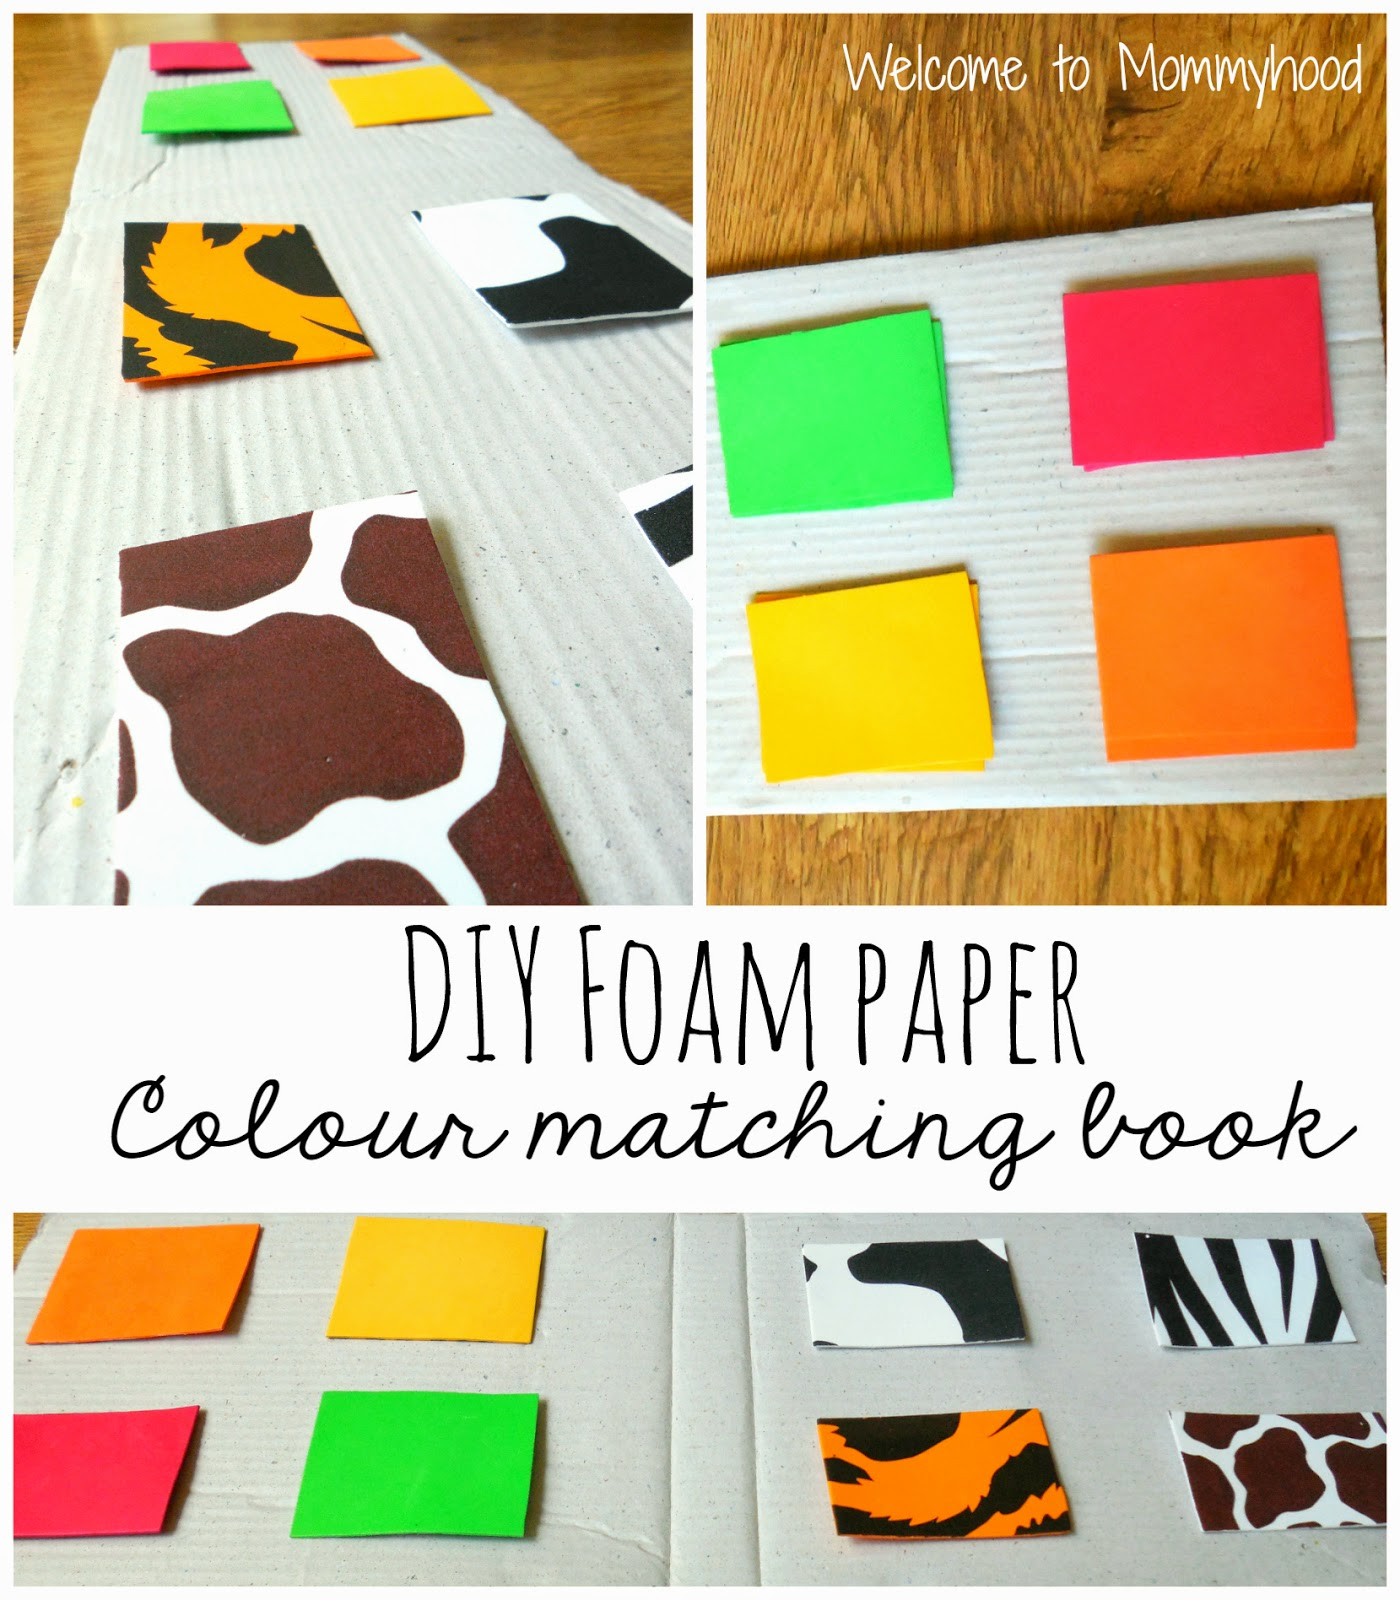 color activities for toddlers 4 easy activities to help toddlers learn colors montessori - Colour Activities For Toddlers